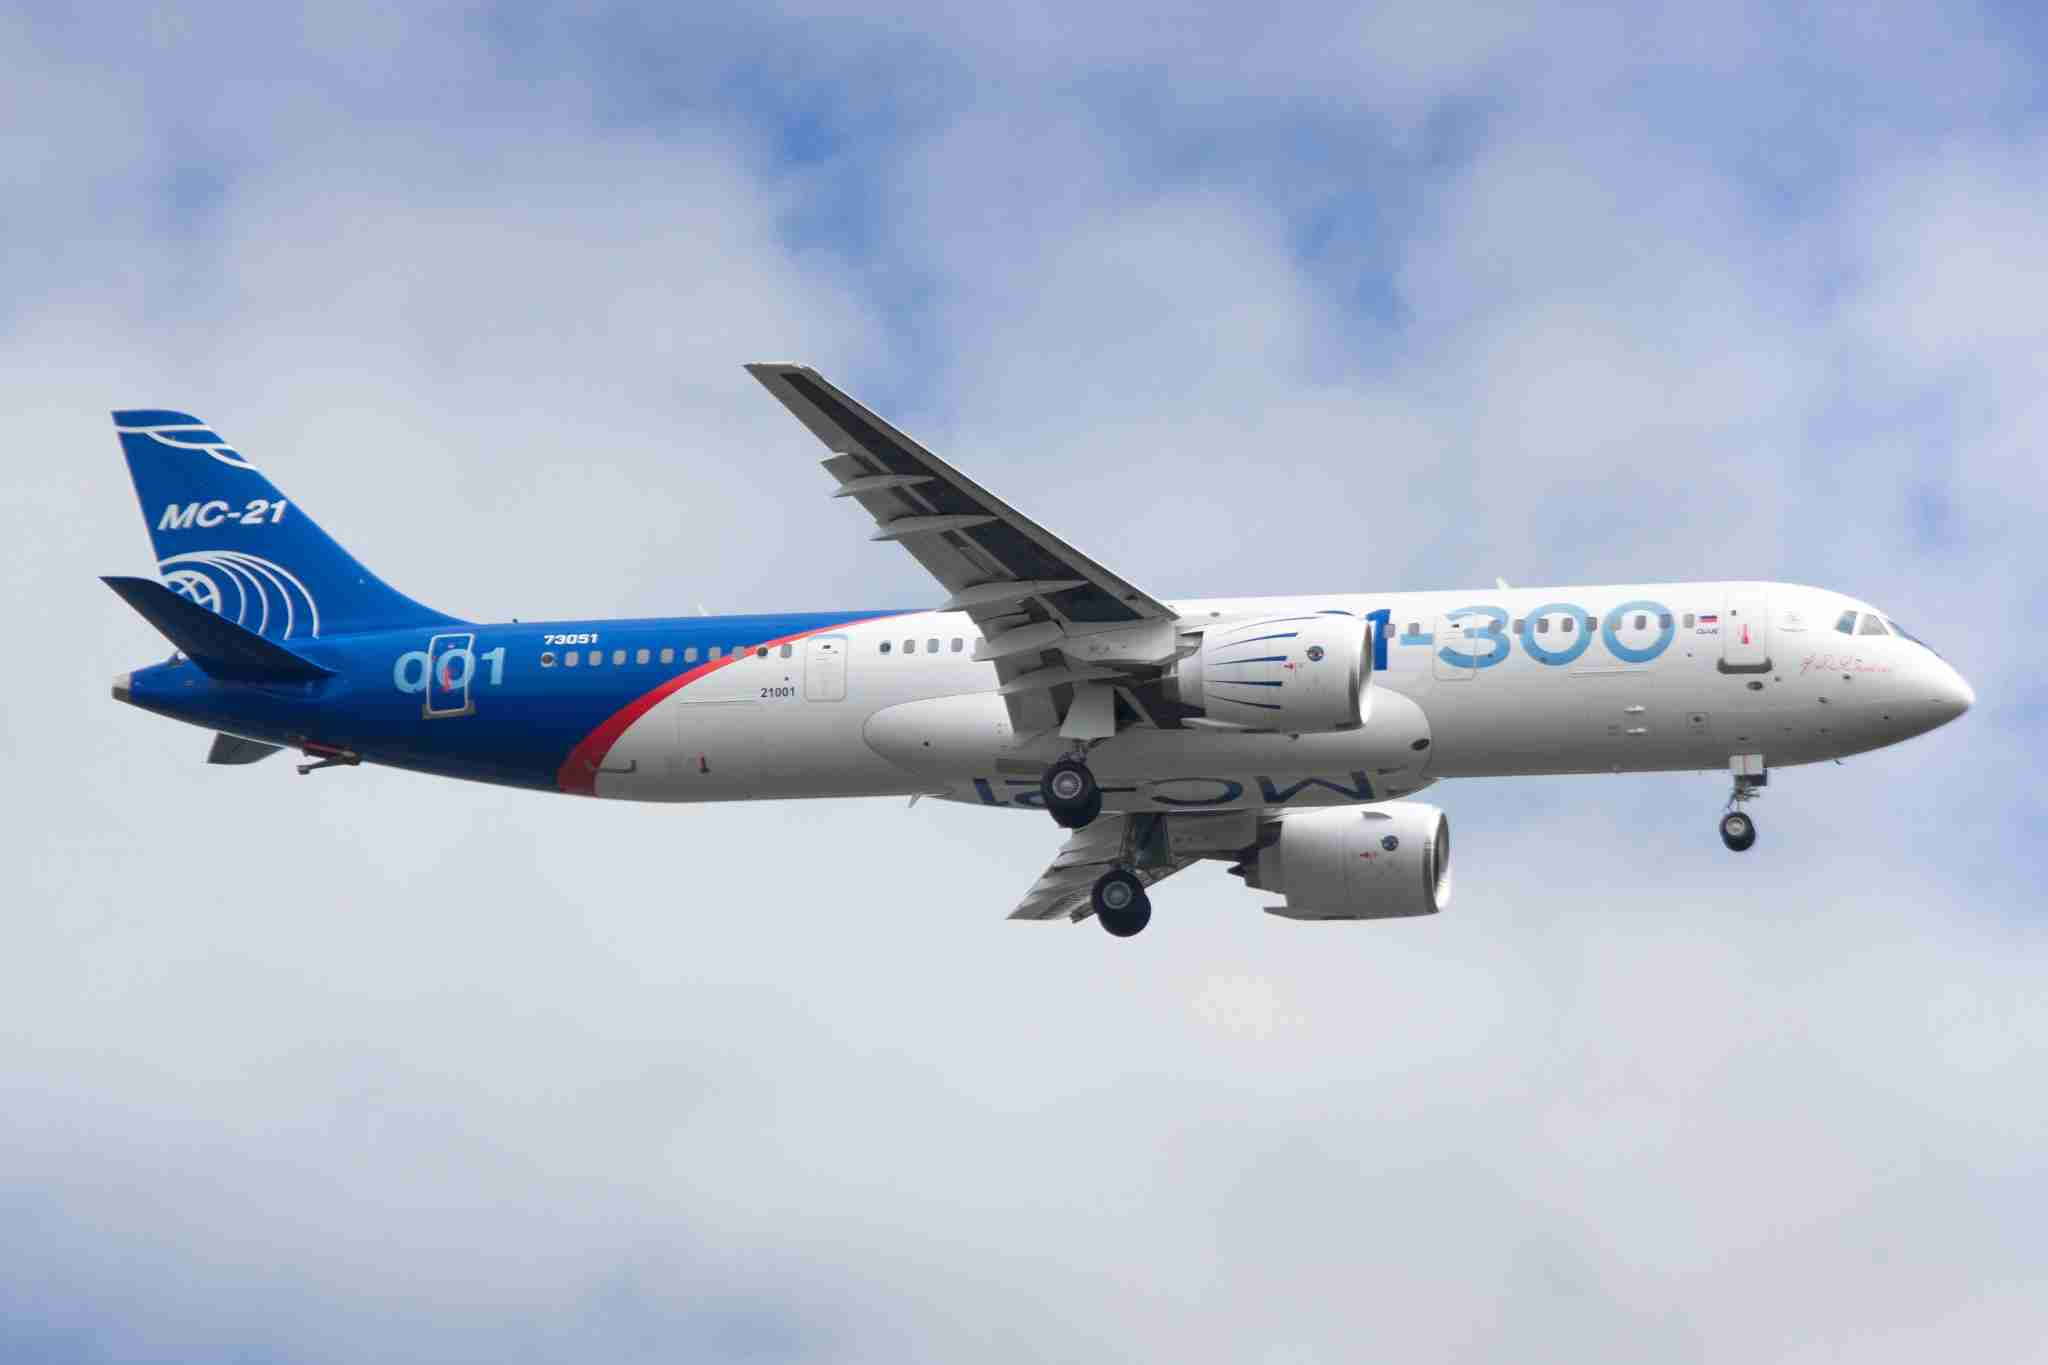 IRKUTSK, RUSSIA - MAY 28, 2017: A new Russian-made Irkut MC-21-300 twinjet airliner performs its first test flight at the Irkutsk Aviation Plant airfield. MC-21 is a project of the short- and medium-range (~6,000 km - 3,700 miles) narrow-body jet airliner. Vladimir Baikalsky/TASS (Photo by Vladimir BaikalskyTASS via Getty Images)